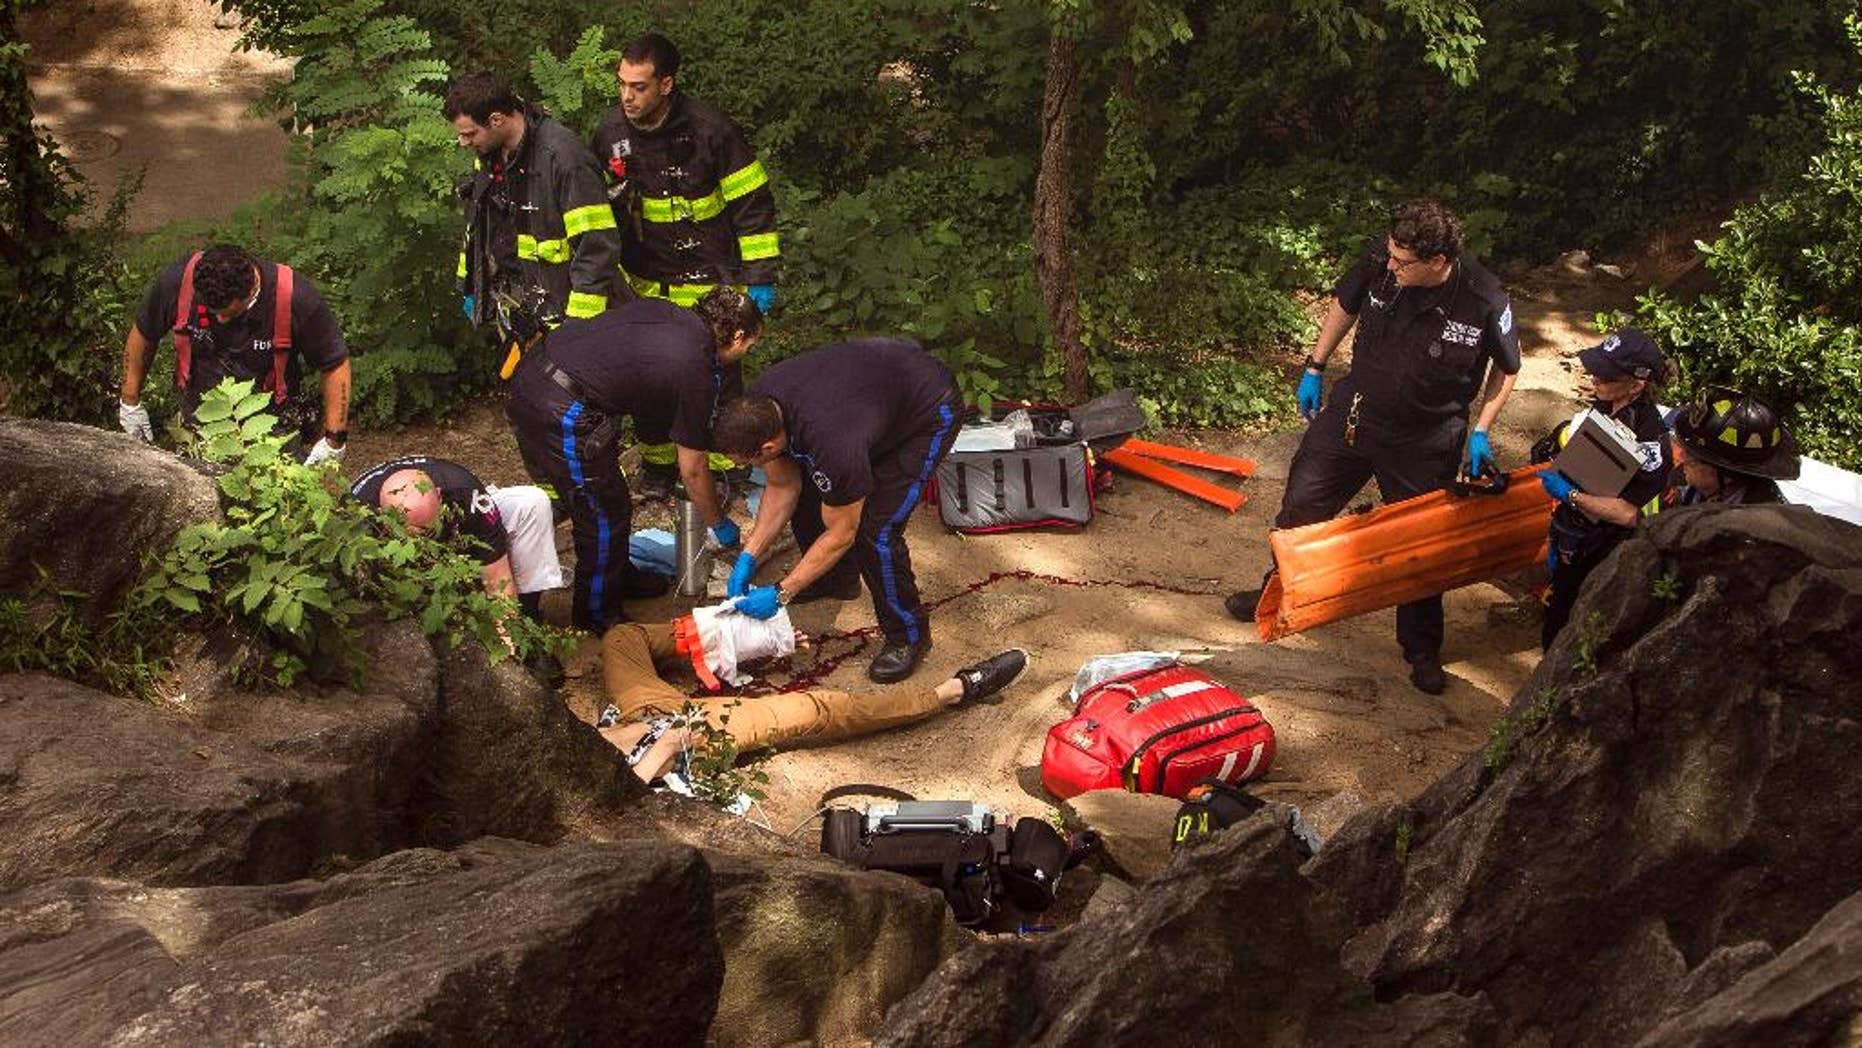 FILE - In this July 3, 2016 file photo, Connor Golden, first responders tend to Connor Golden, a teenage tourist from Virginia, after he was injured in an explosion in Central Park.